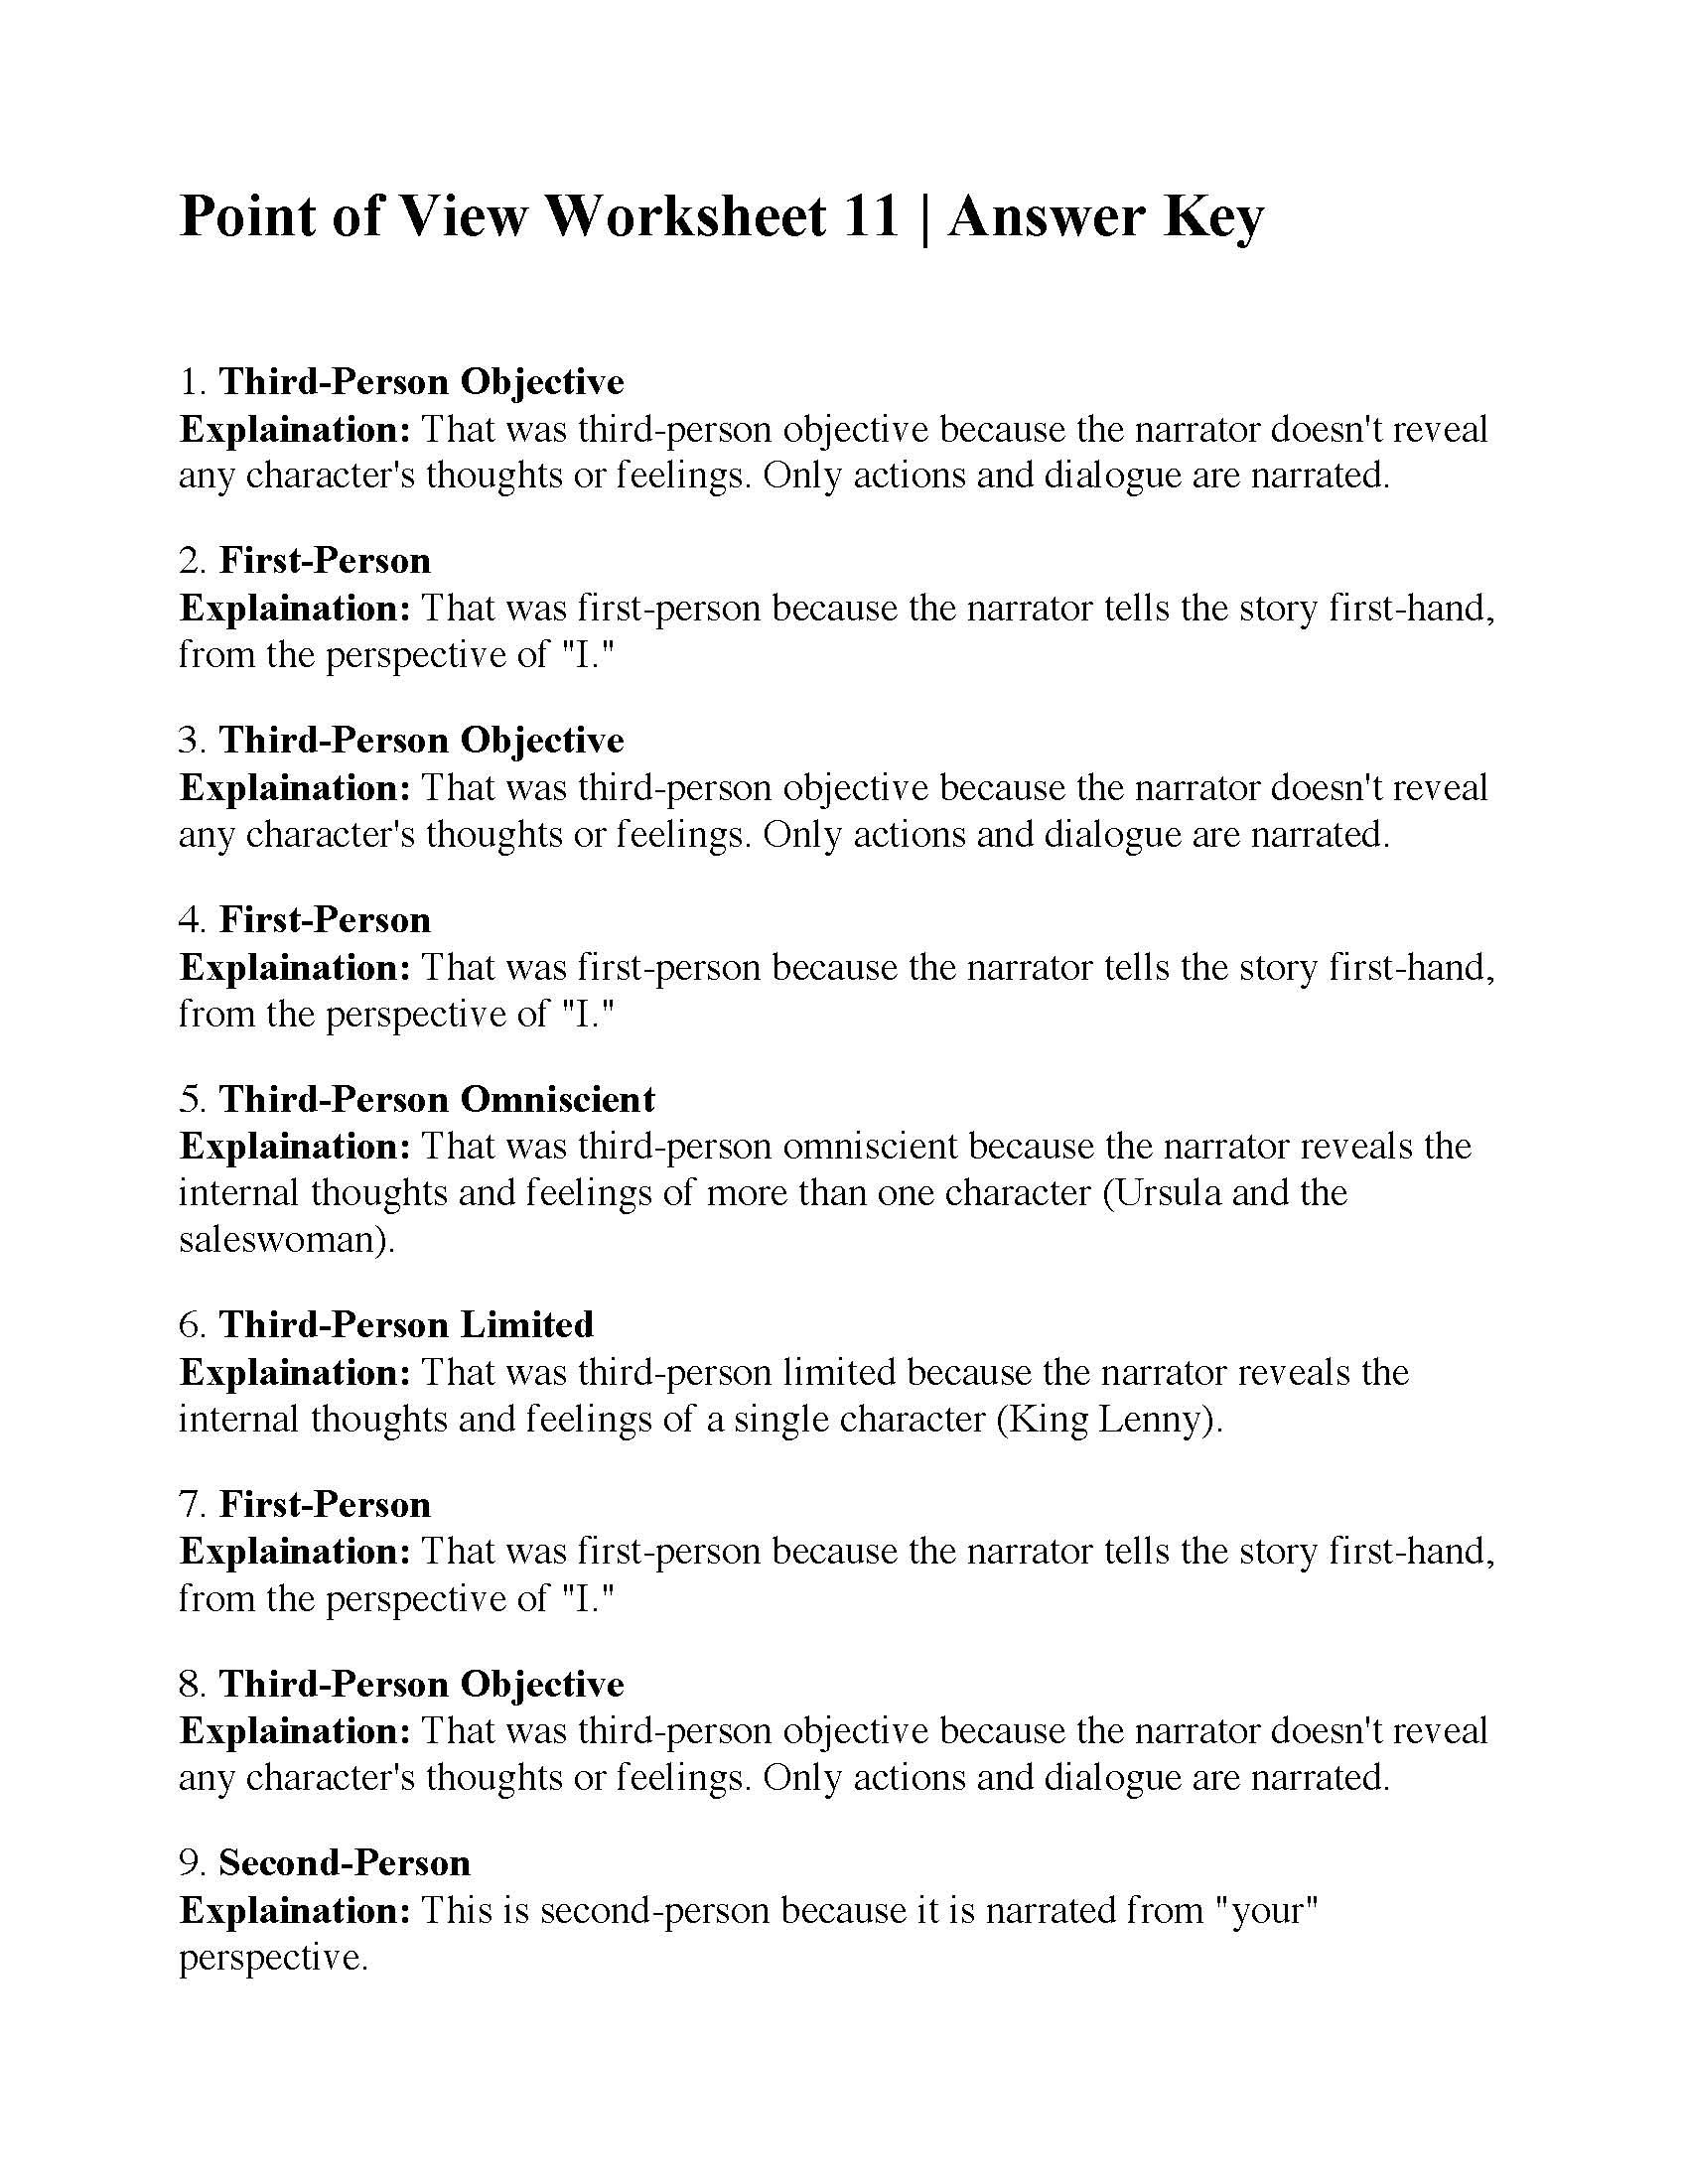 Jupiter Reading Prehension Worksheet Answers